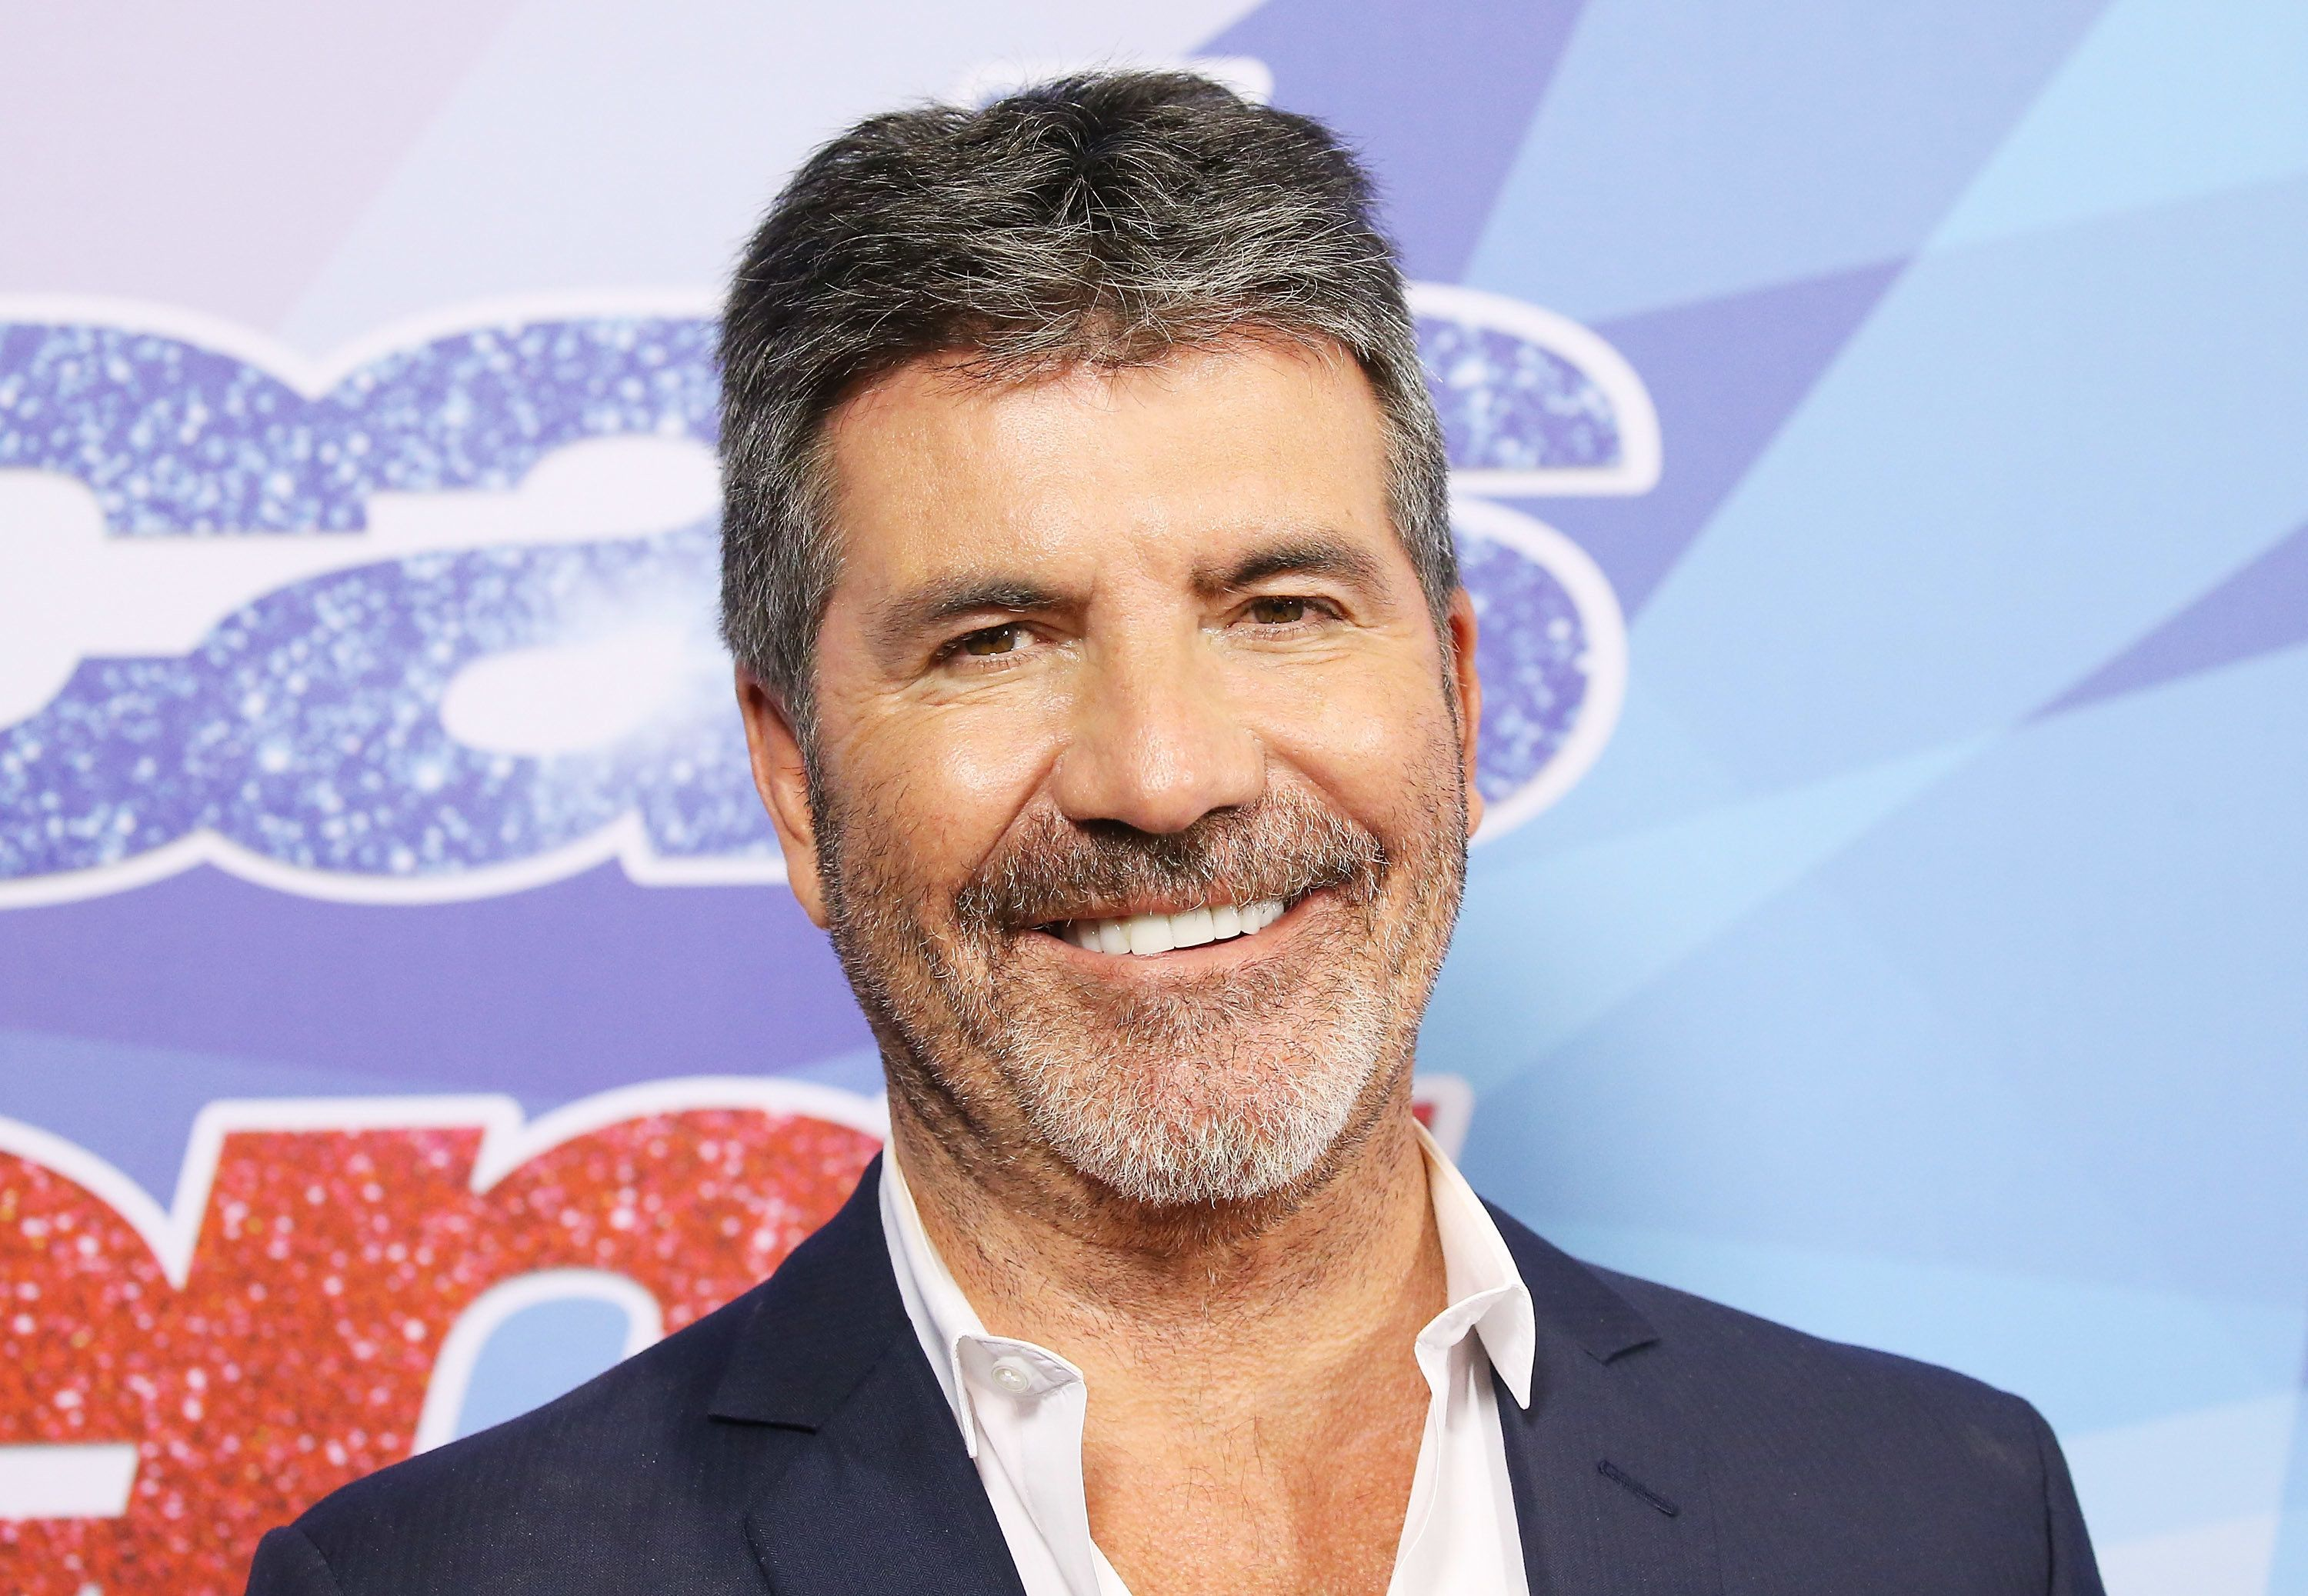 Simon Cowell Goes Phone-Free For 10 Months, Here Are 5 Tips For Cutting